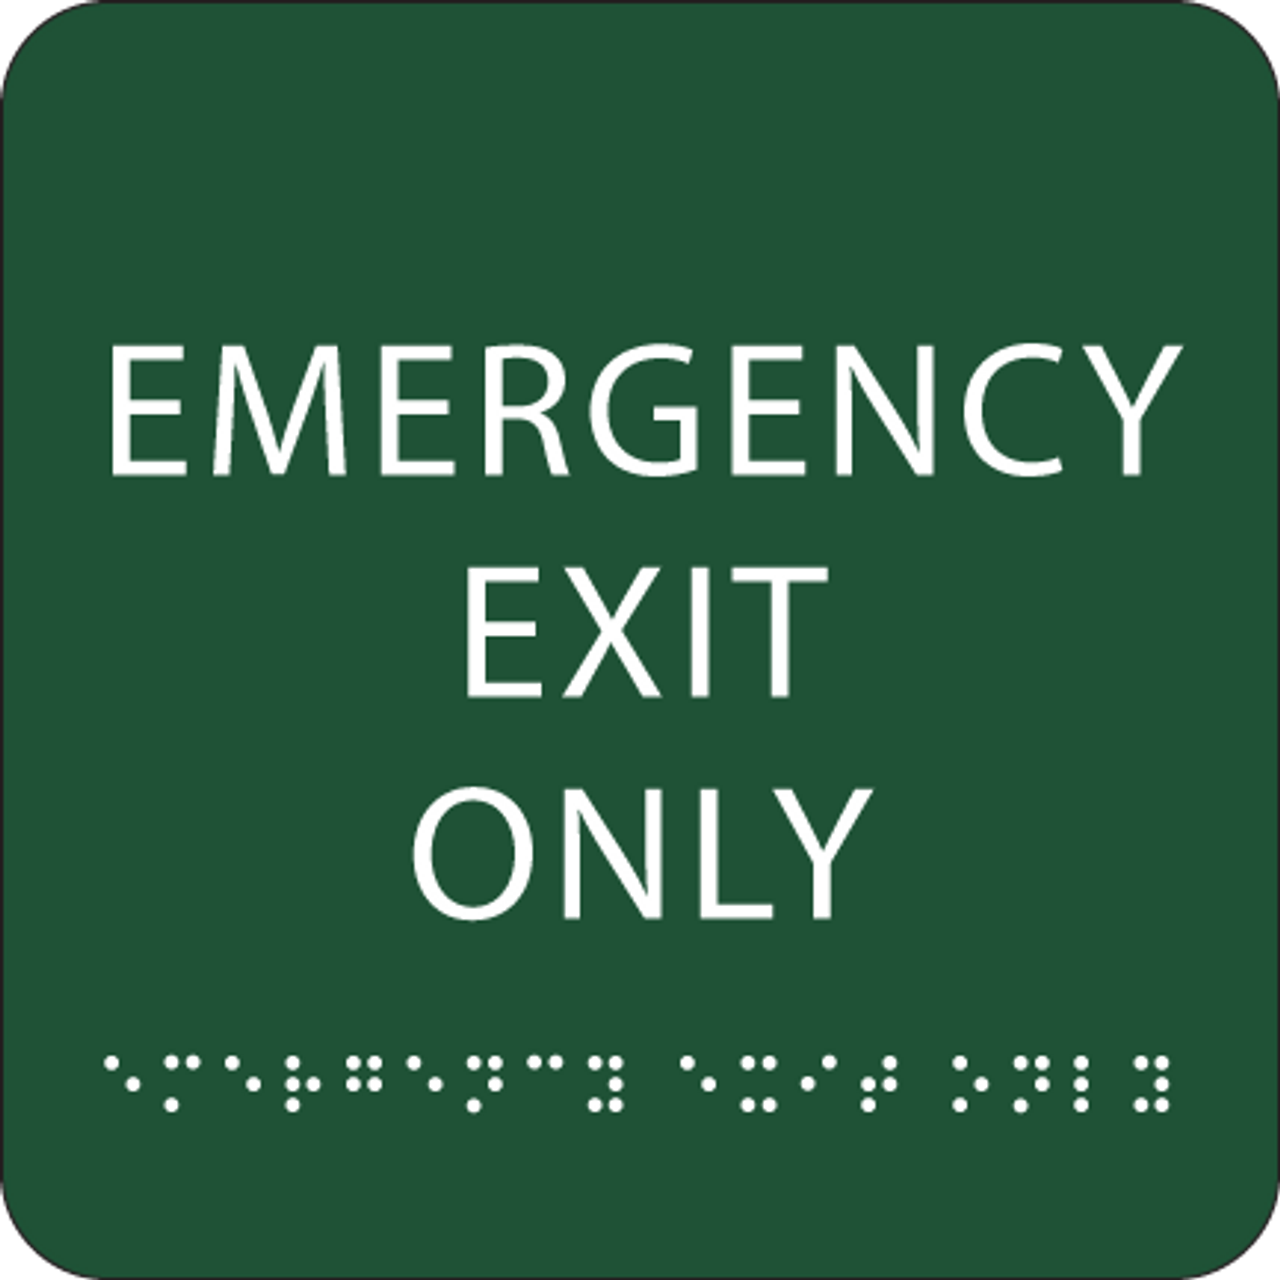 Green Emergency Exit Only Tactile Sign